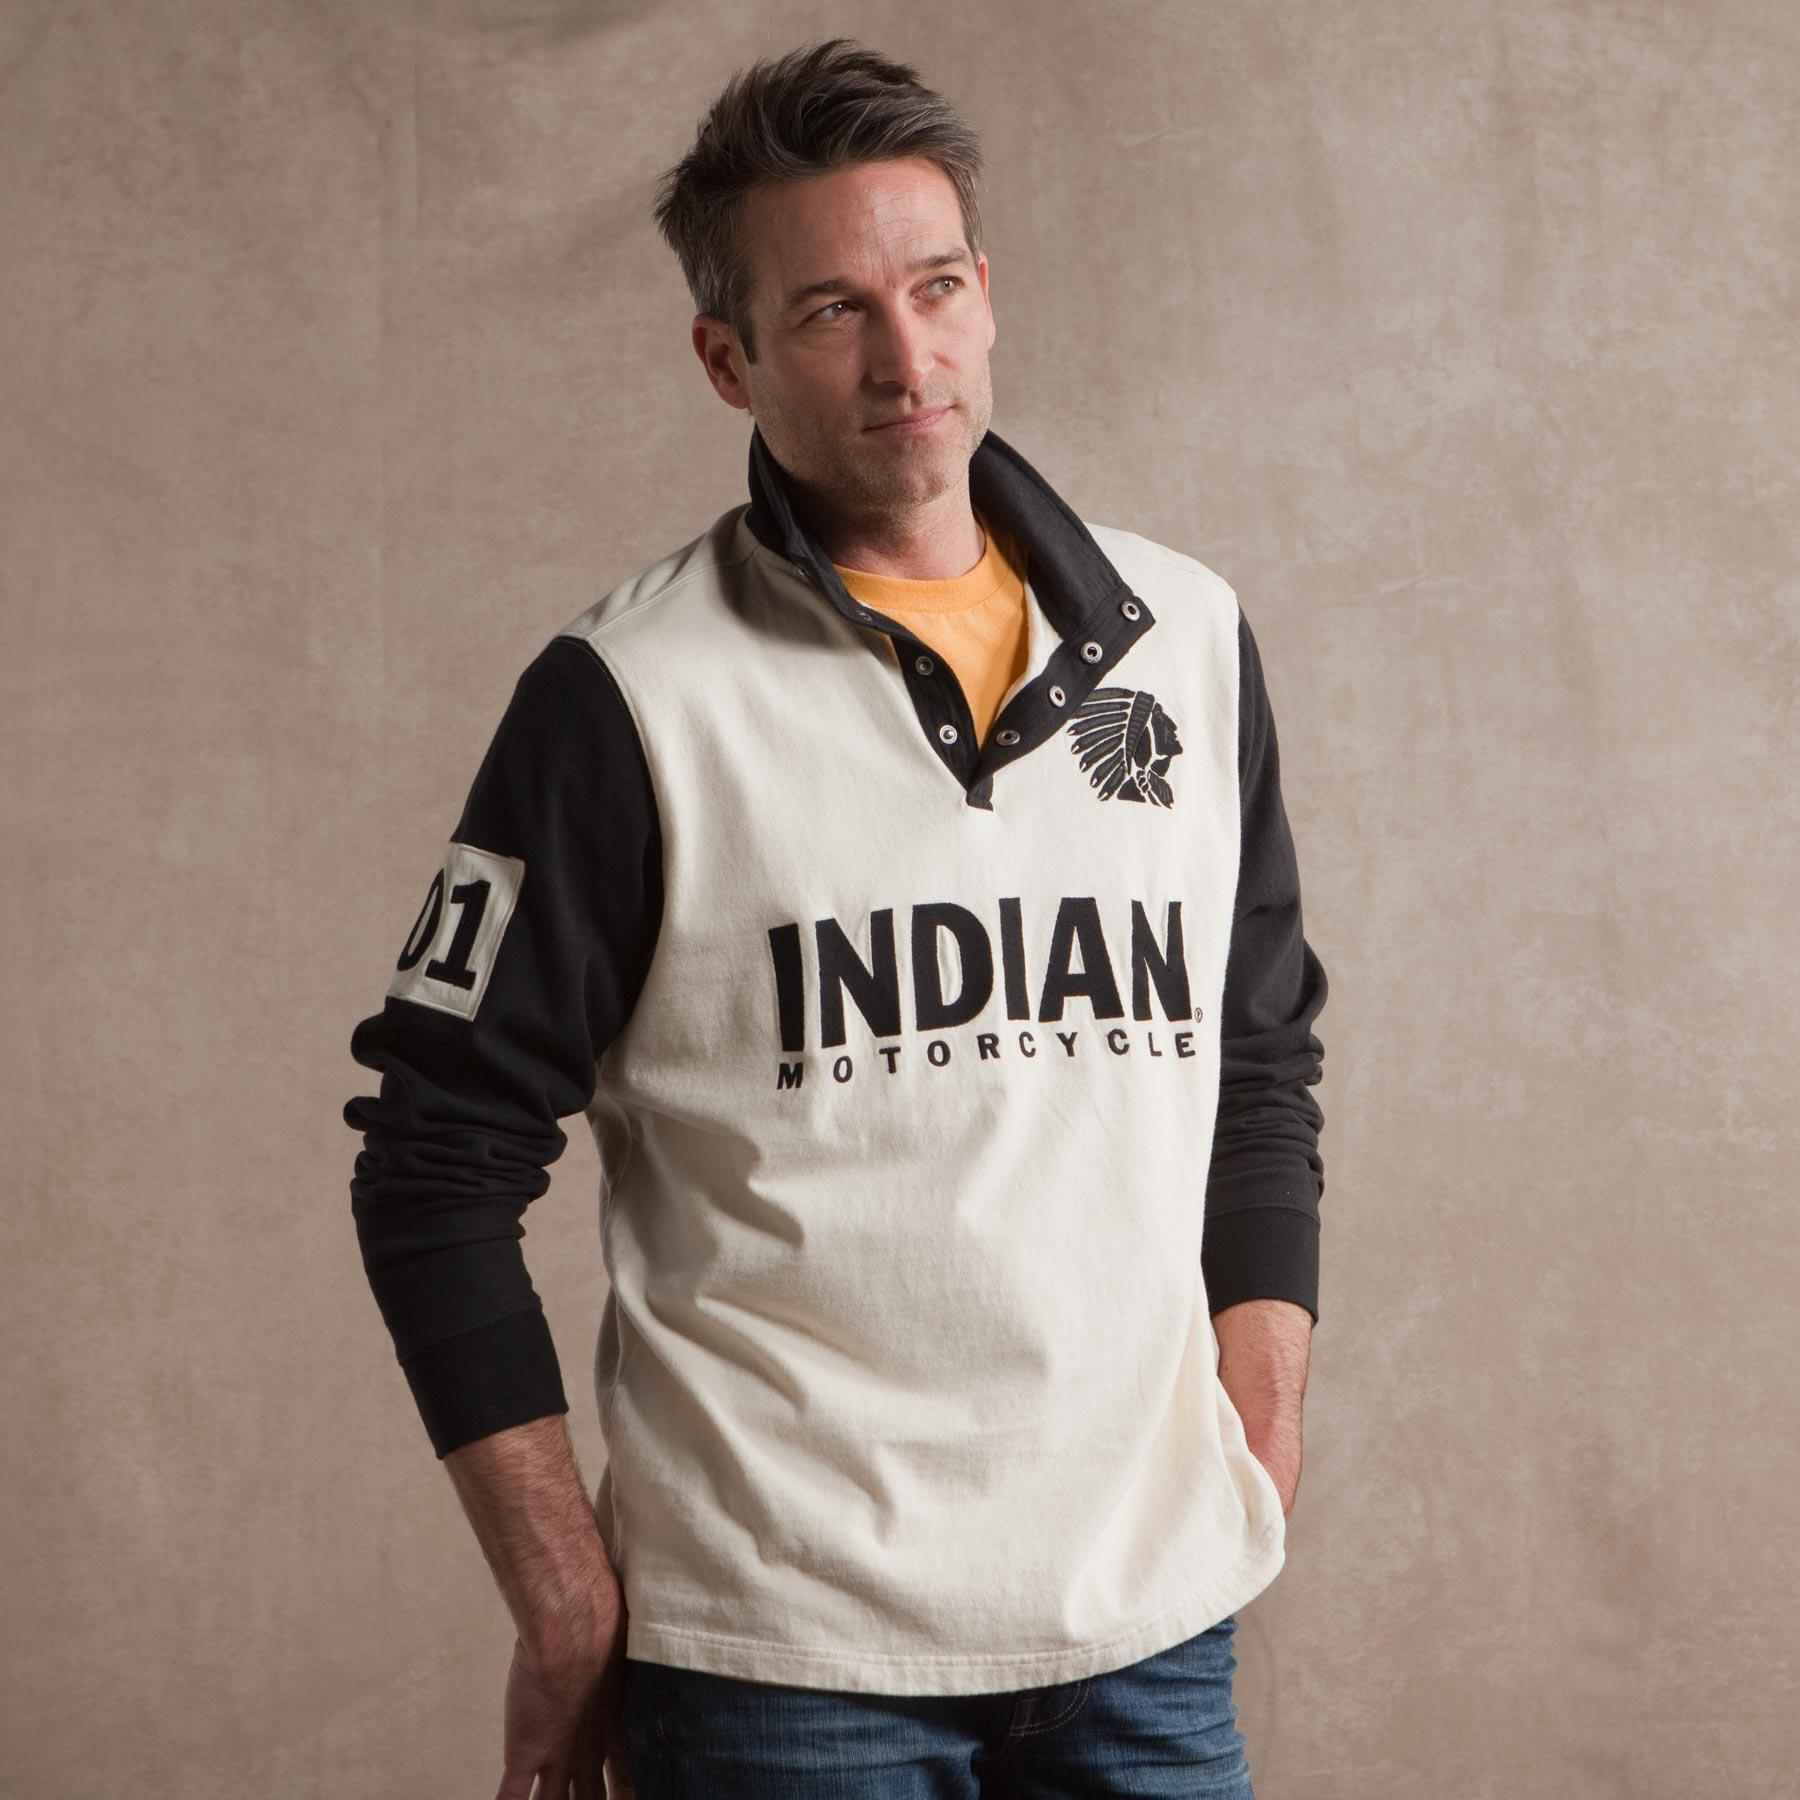 INDIAN MOTORS RUGBY JERSEY: View 1